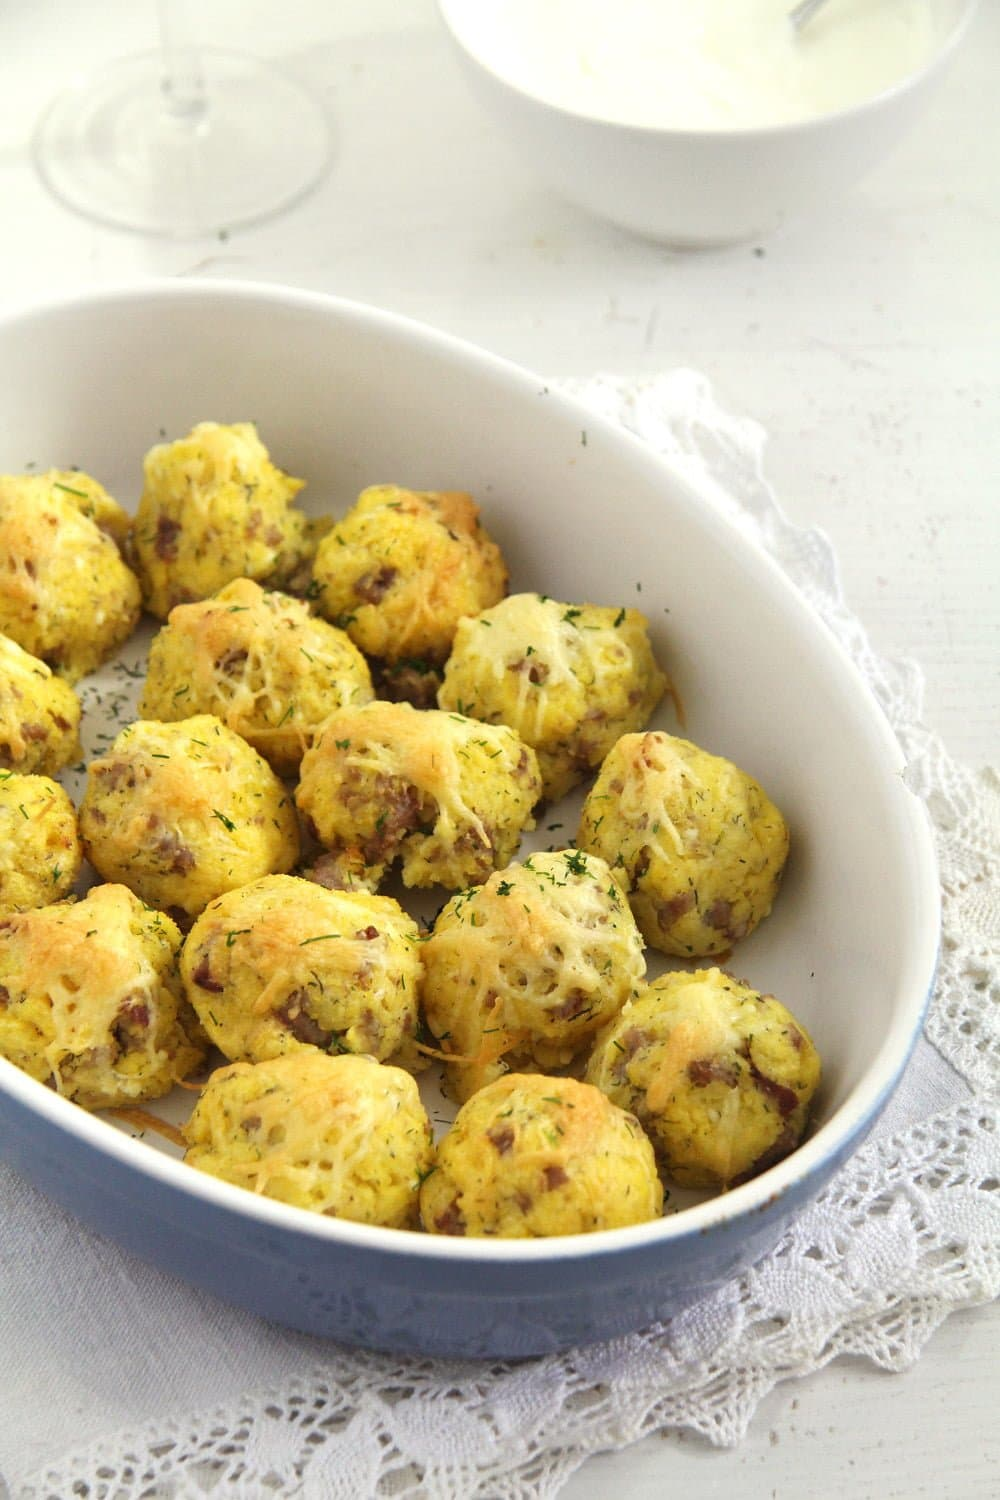 cheesy balls with cornmeal and sausages in a blue baking dish